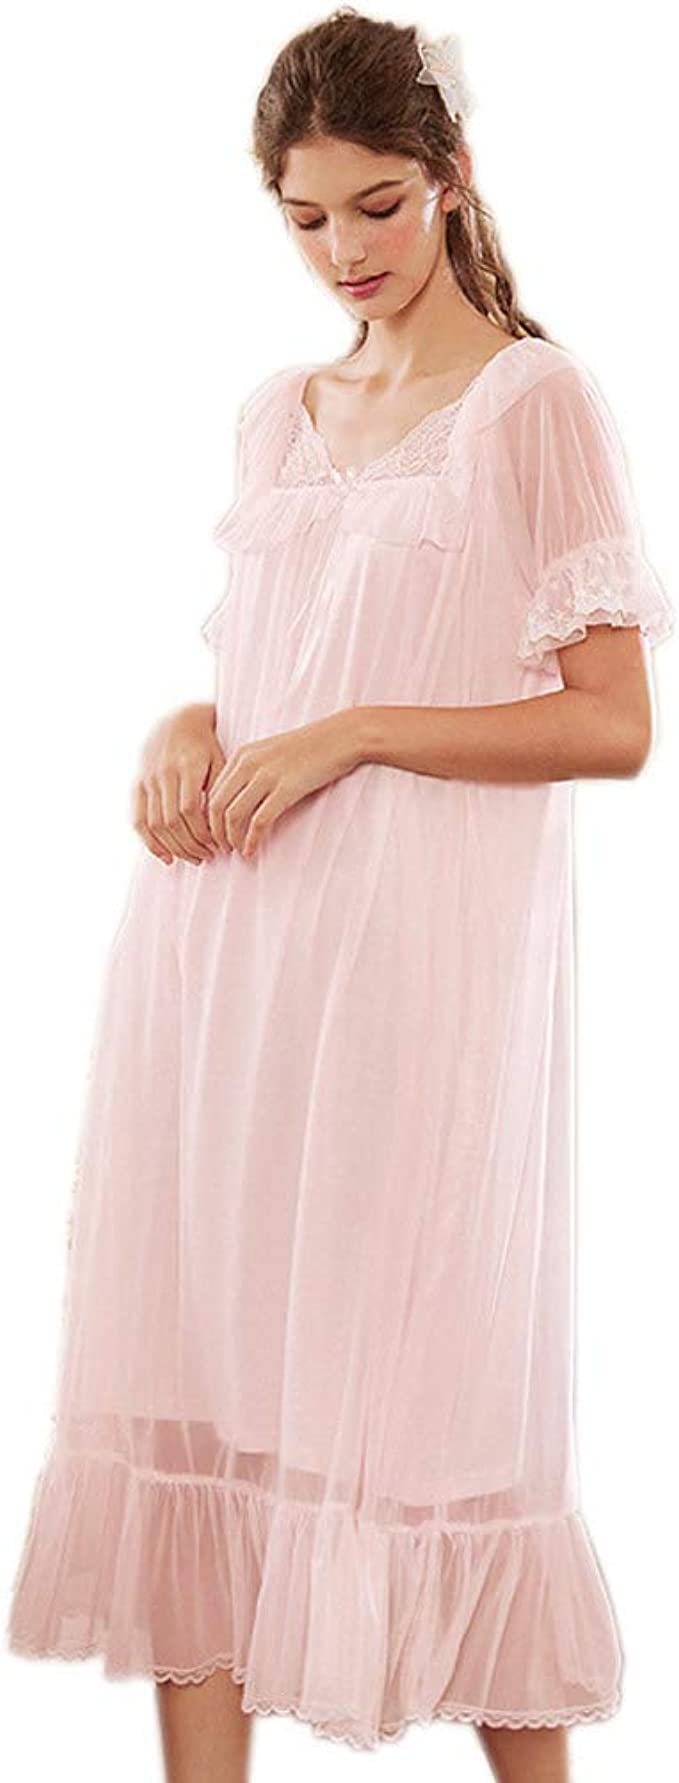 Vintage Nightgowns, Pajamas, Baby Dolls, Robes Womens Long Sheer Vintage Victorian Lace Nightgown Sleepwear Pyjamas Lounge Dress Nightwear $29.99 AT vintagedancer.com